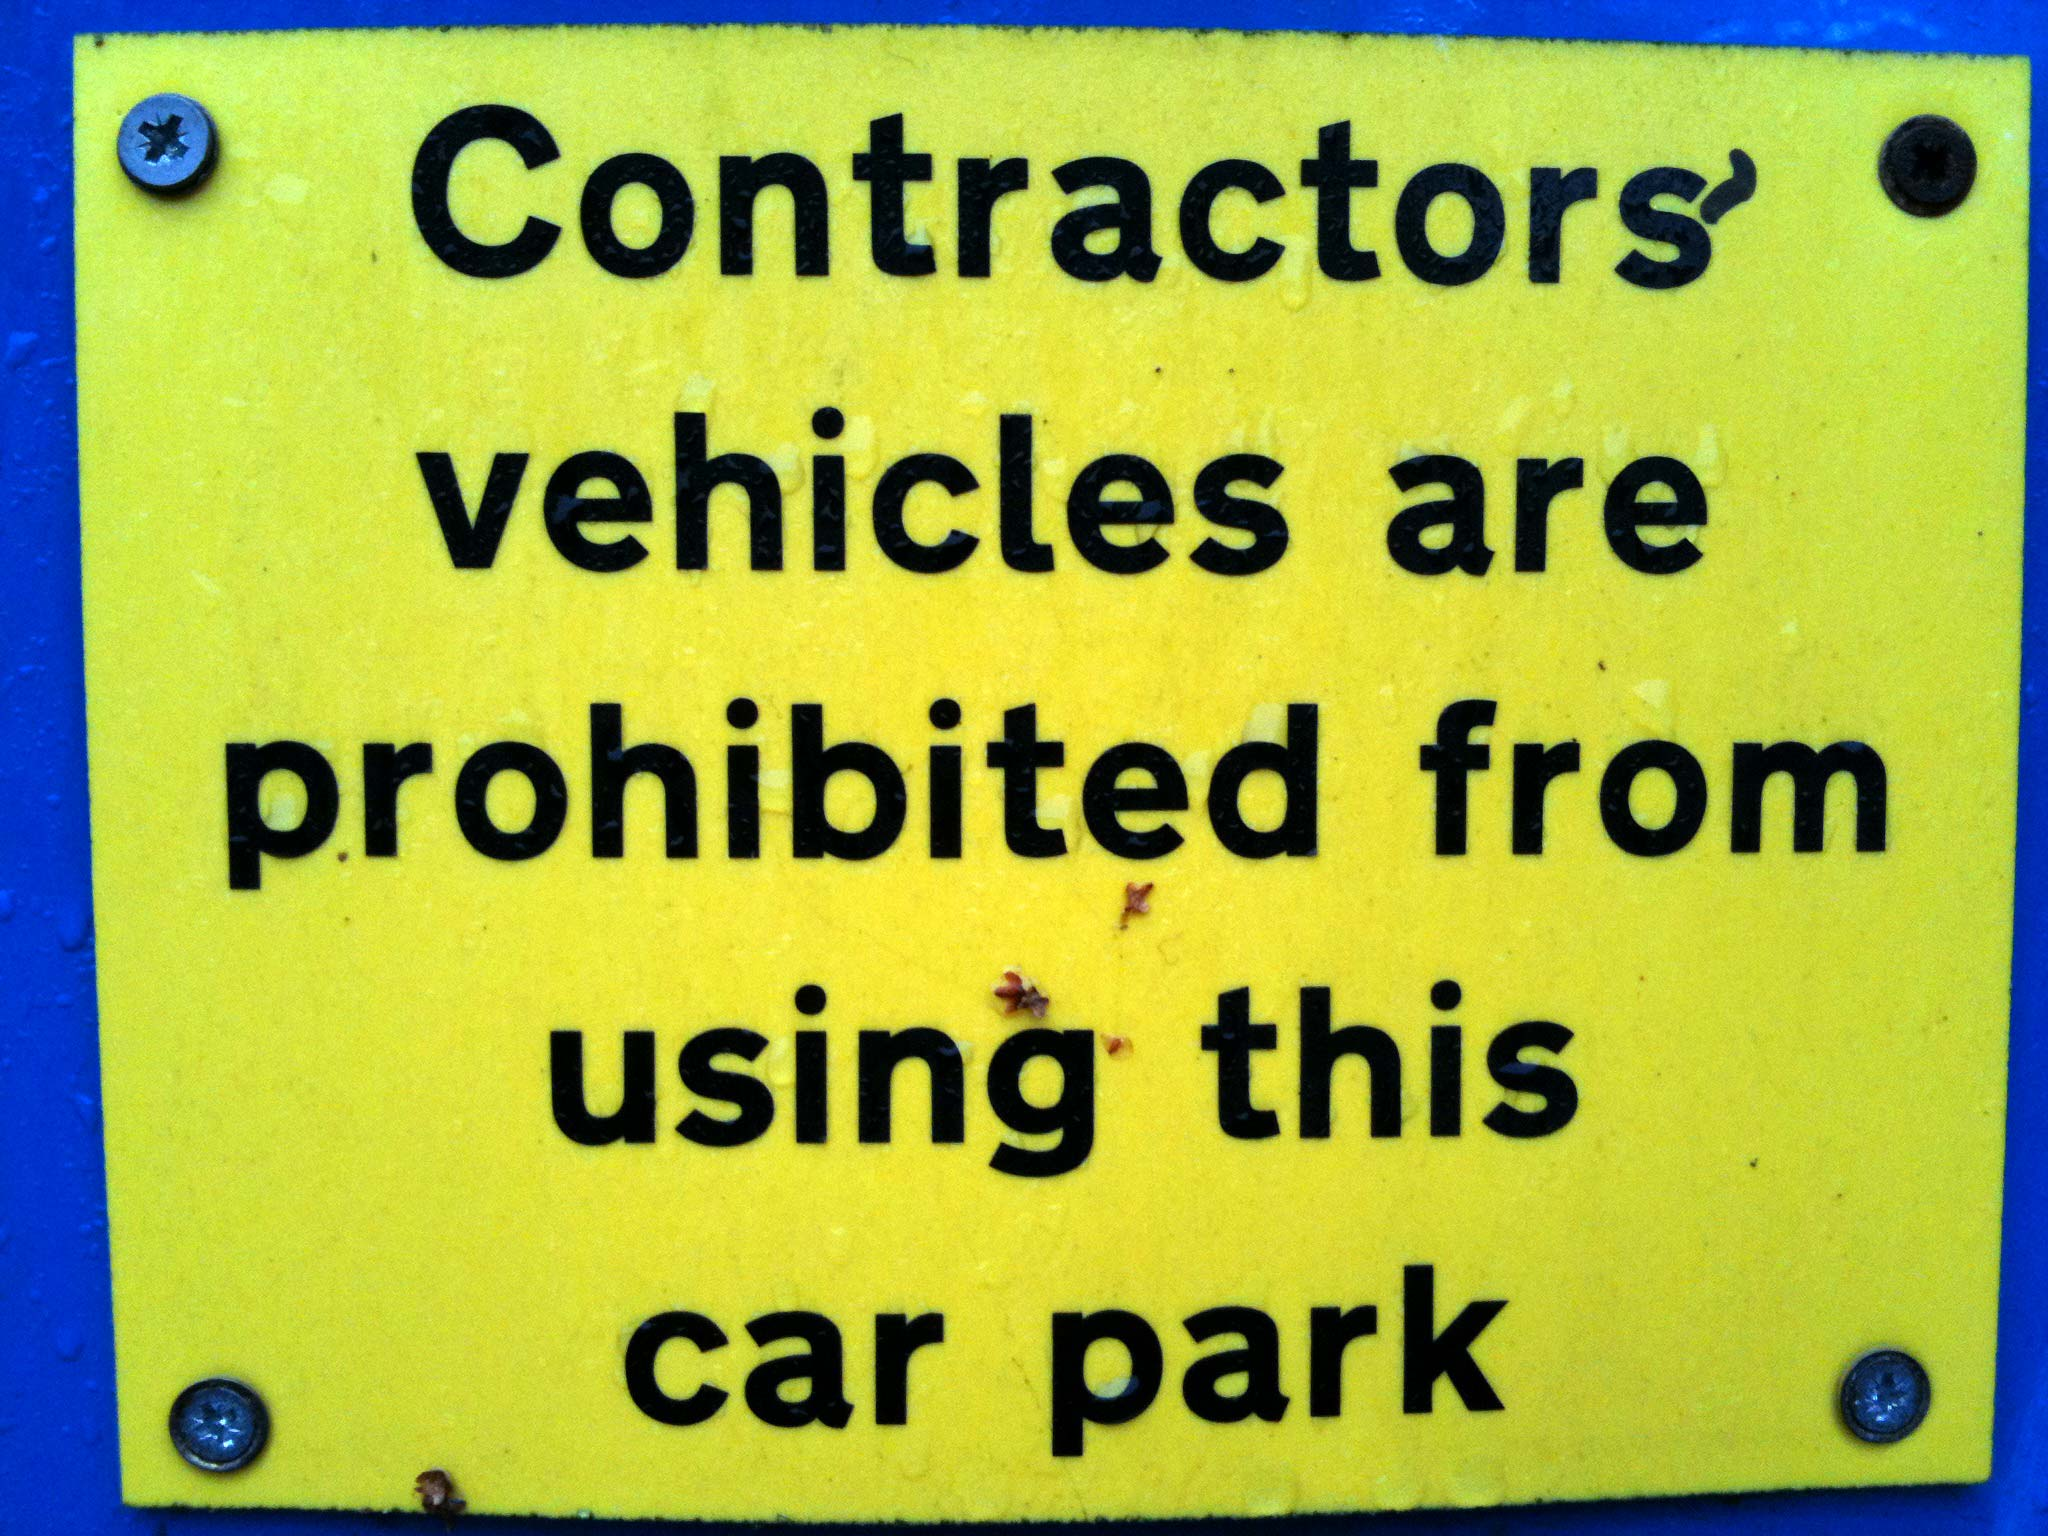 Yellow sign with black type that starts: Contractors vehicles are prohibited. In black pen, an apostrophe has been added after the s of Contractors.